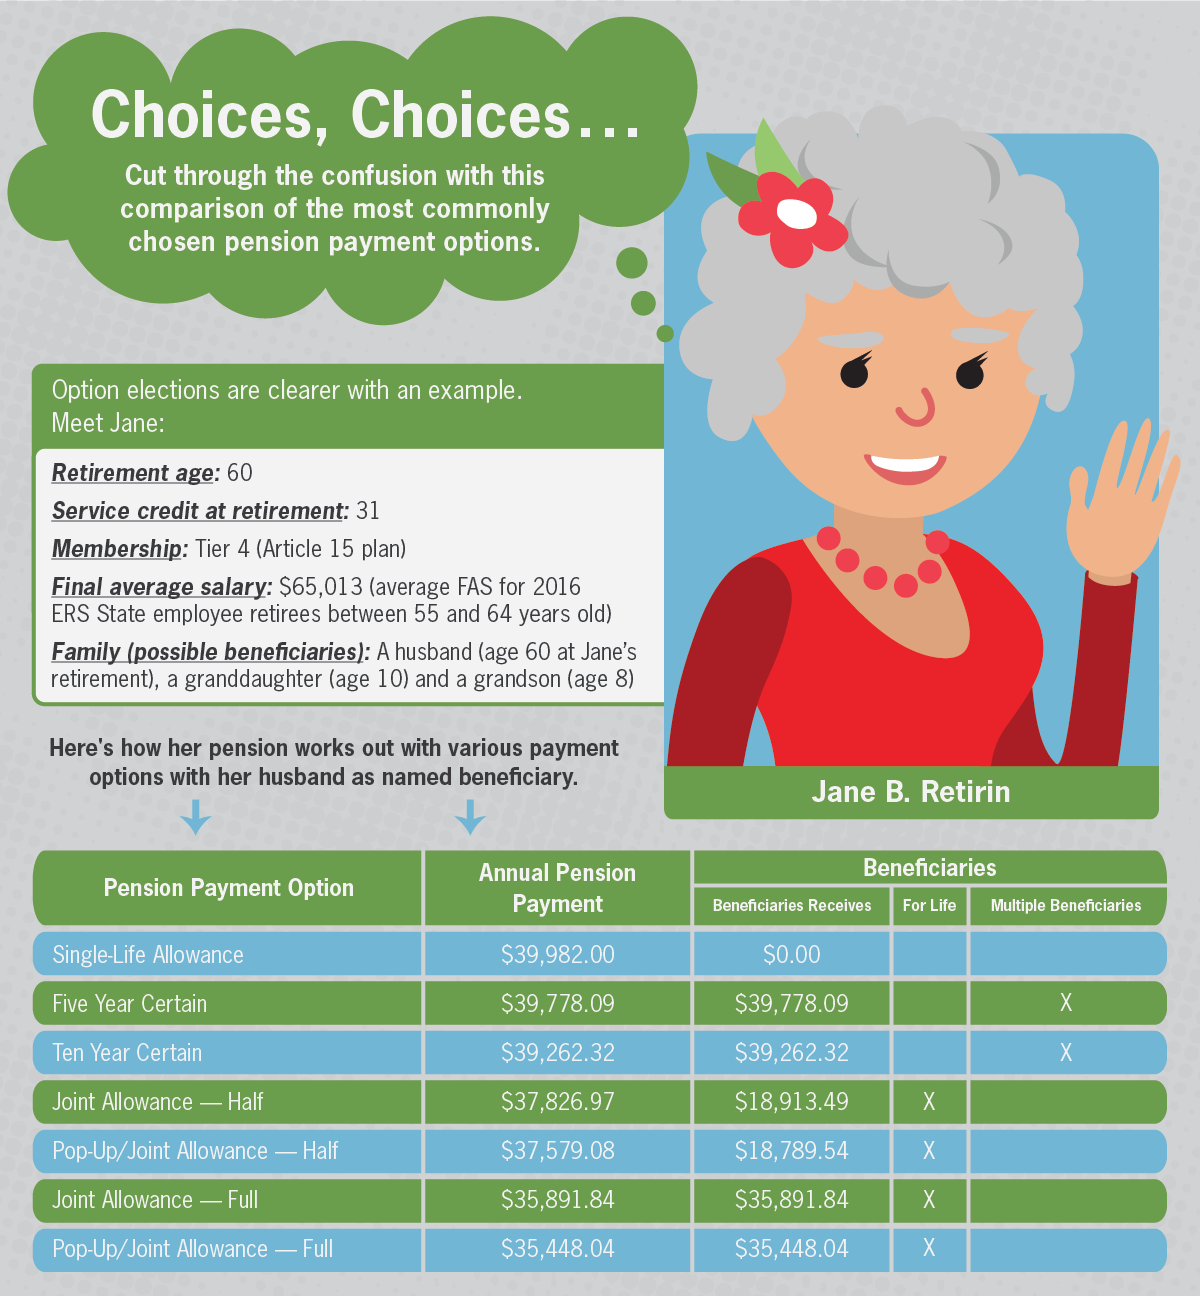 Pension Payment Option